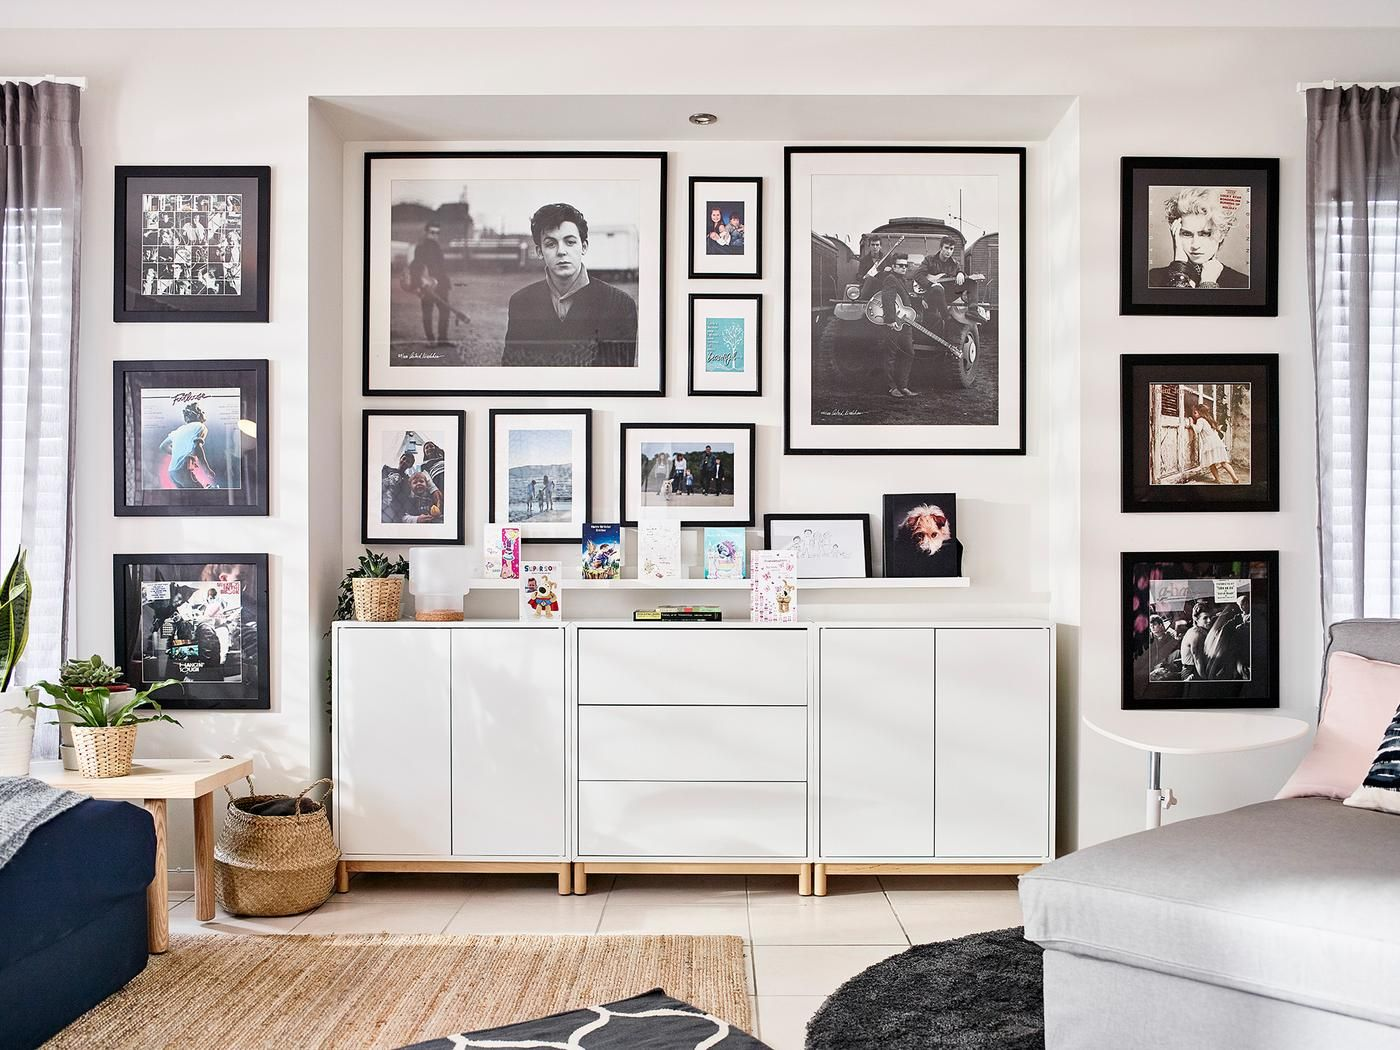 How To Design A Living Room Without A Tv Centre Stage Livingroom Layout Living Room Dining Room Combo Living Room Bedroom Combination